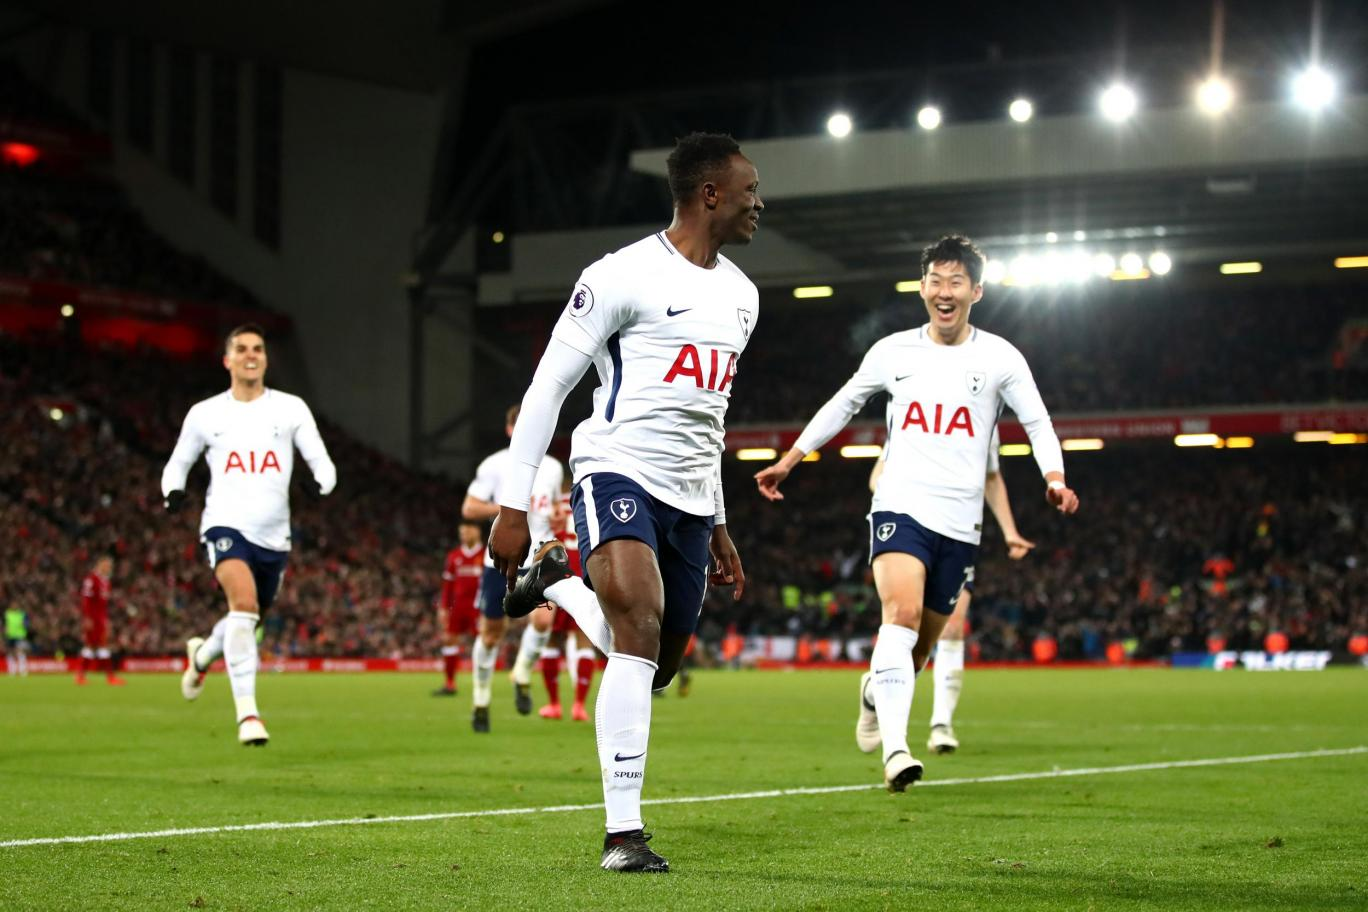 Victor Wanyama celebrates with his Tottenham teammates after scoring against Liverpool at Anfield. (Getty Images)